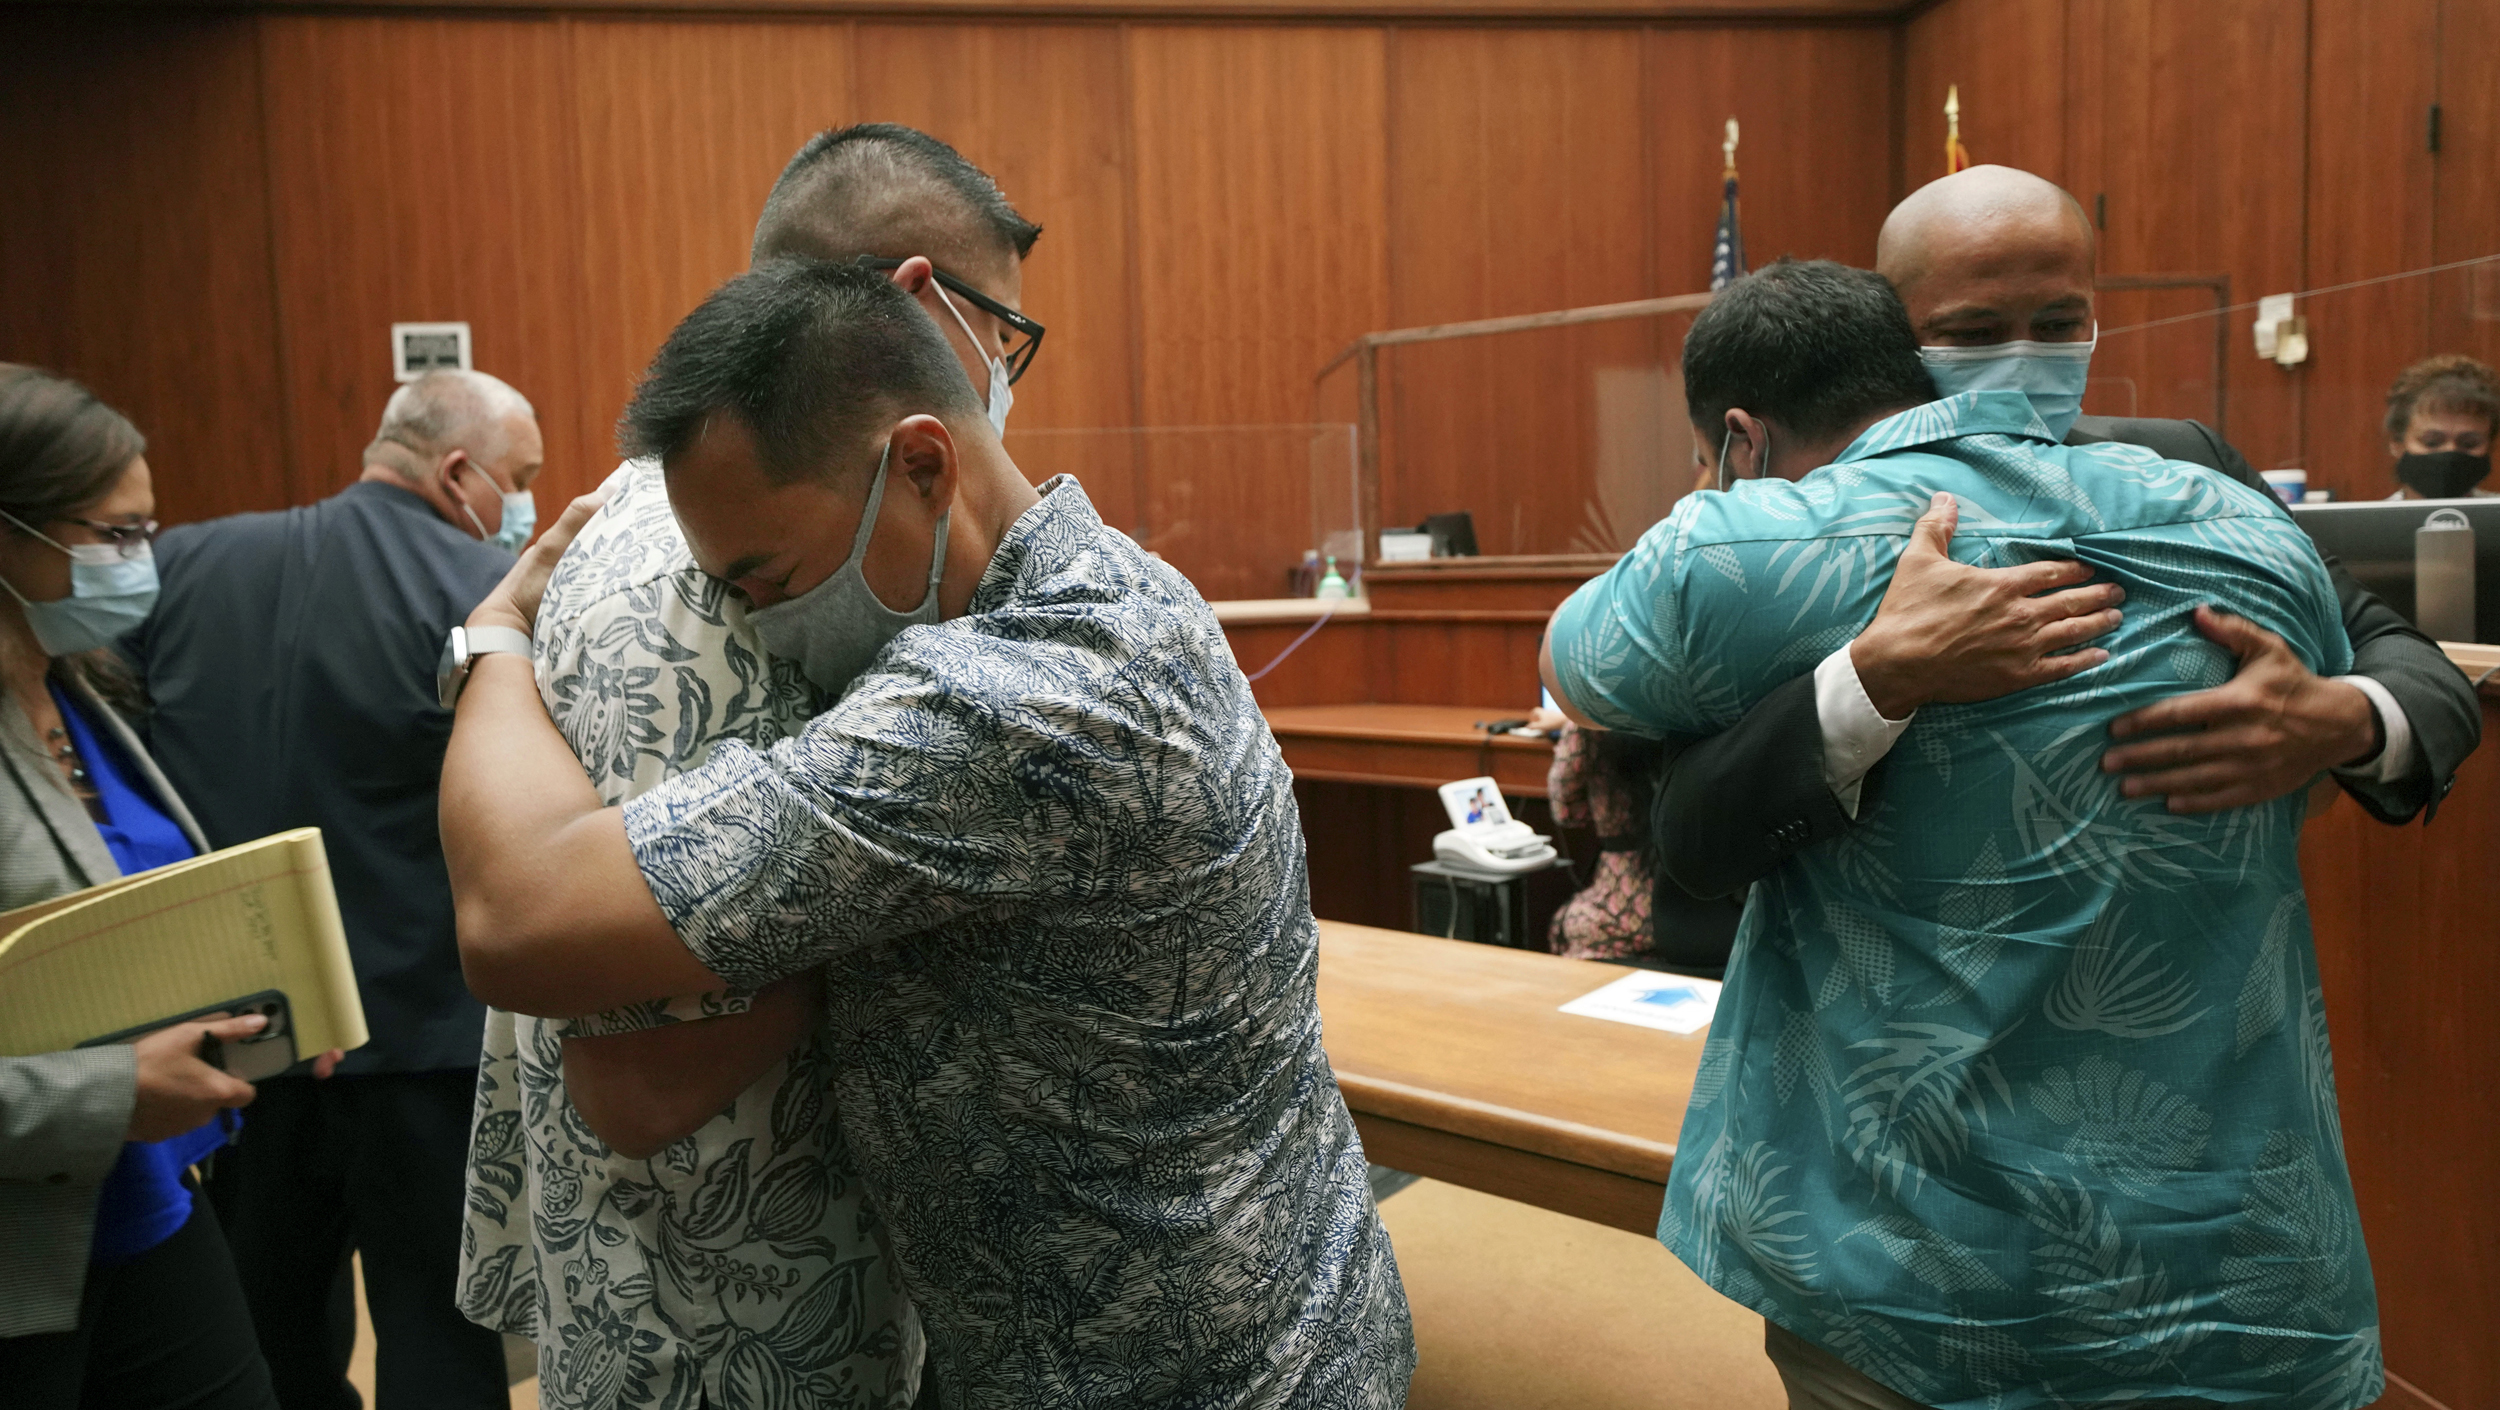 Hawaii judge drops murder, attempted murder charges for officers in teen's killing